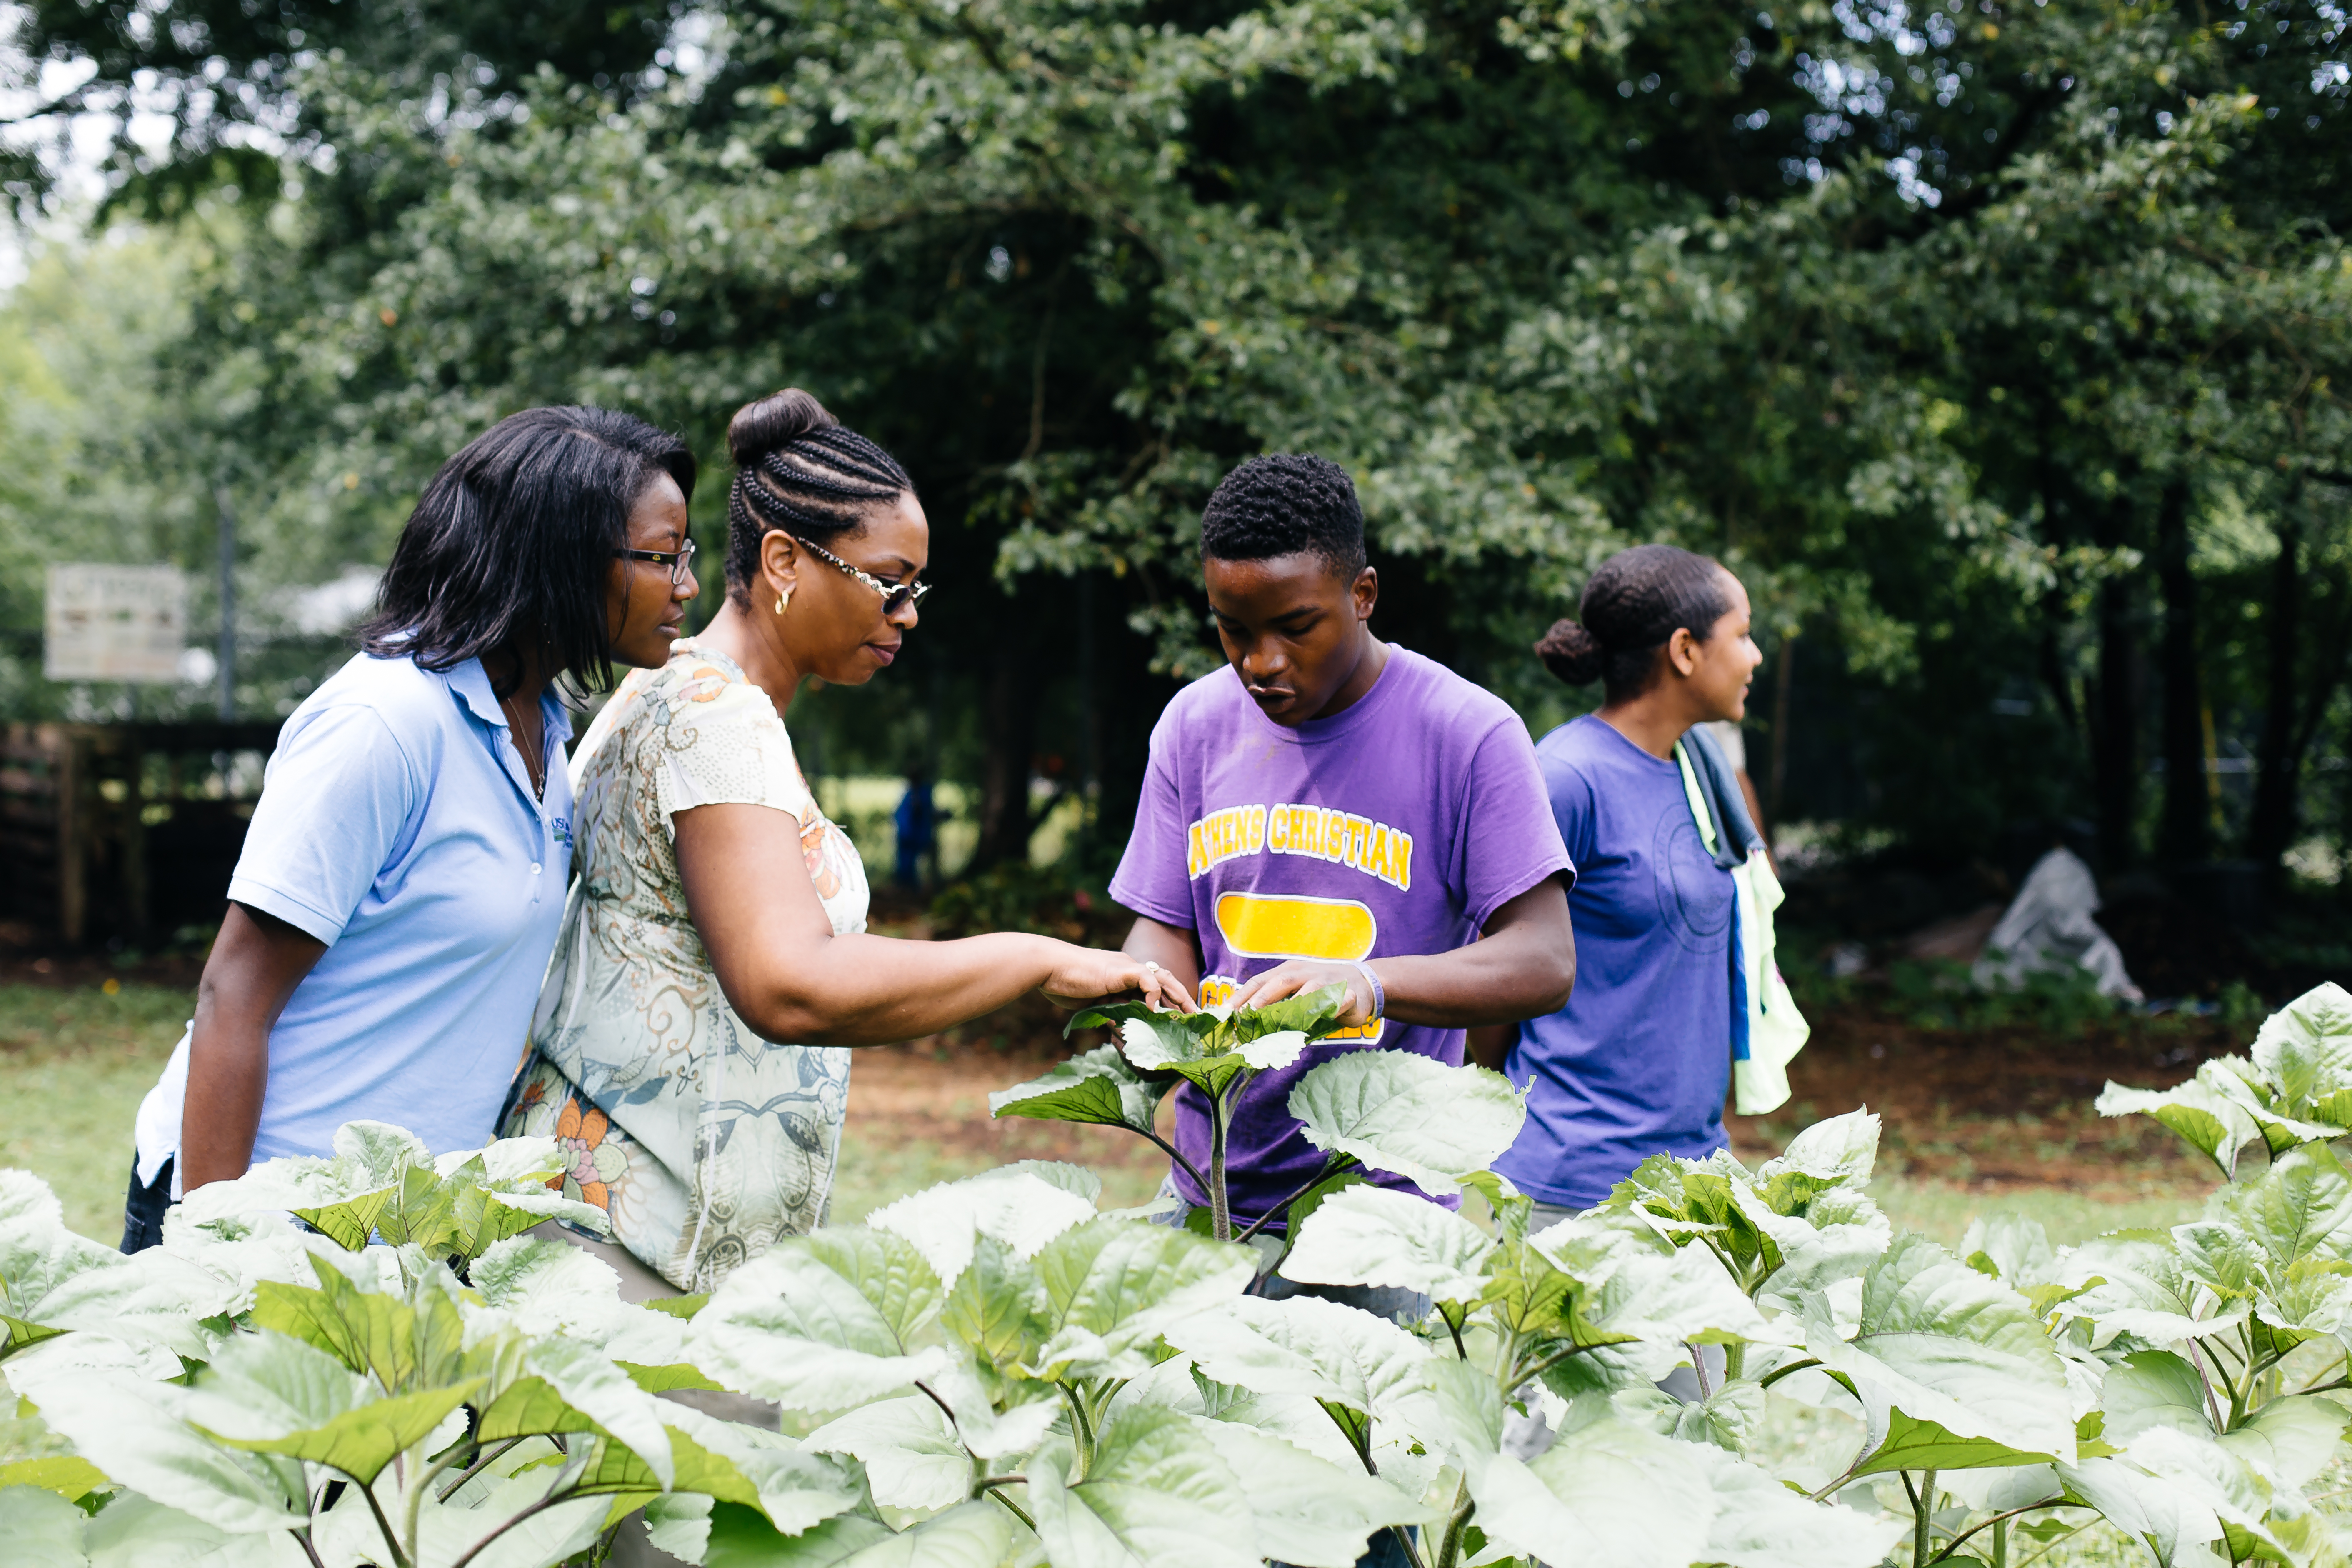 Athens Land Trust Young Urban Farmer Dontae Meadows gives a tour of the West Broad Garden to visiting USDA Farm to School staff. Christina Conell/USDA Farm to School